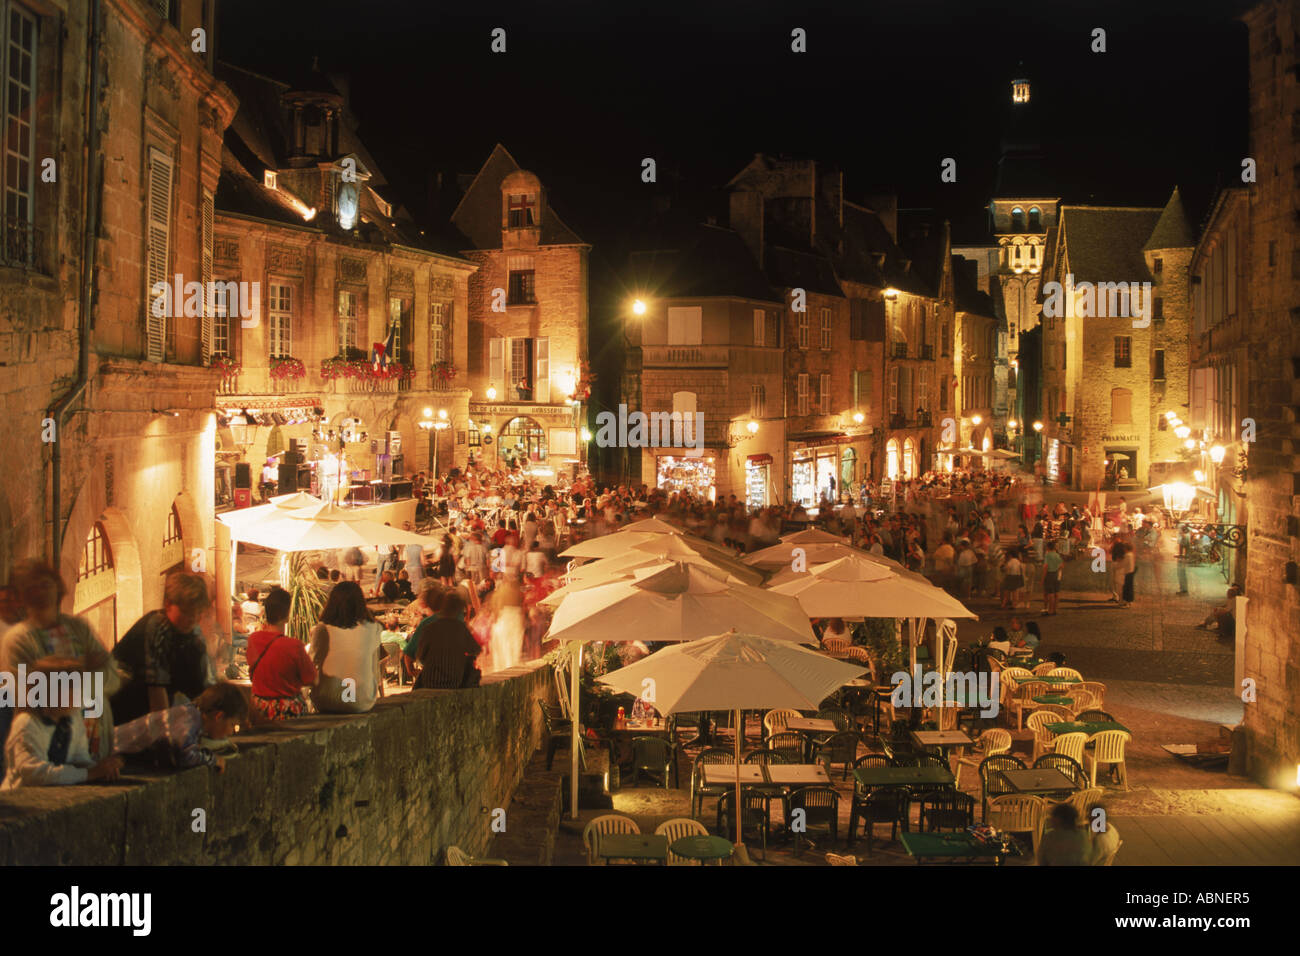 Open air markets and restaurants on Place de la Liberte at Old Town of Sarlat Perigord Noir in Dordogne France Stock Photo